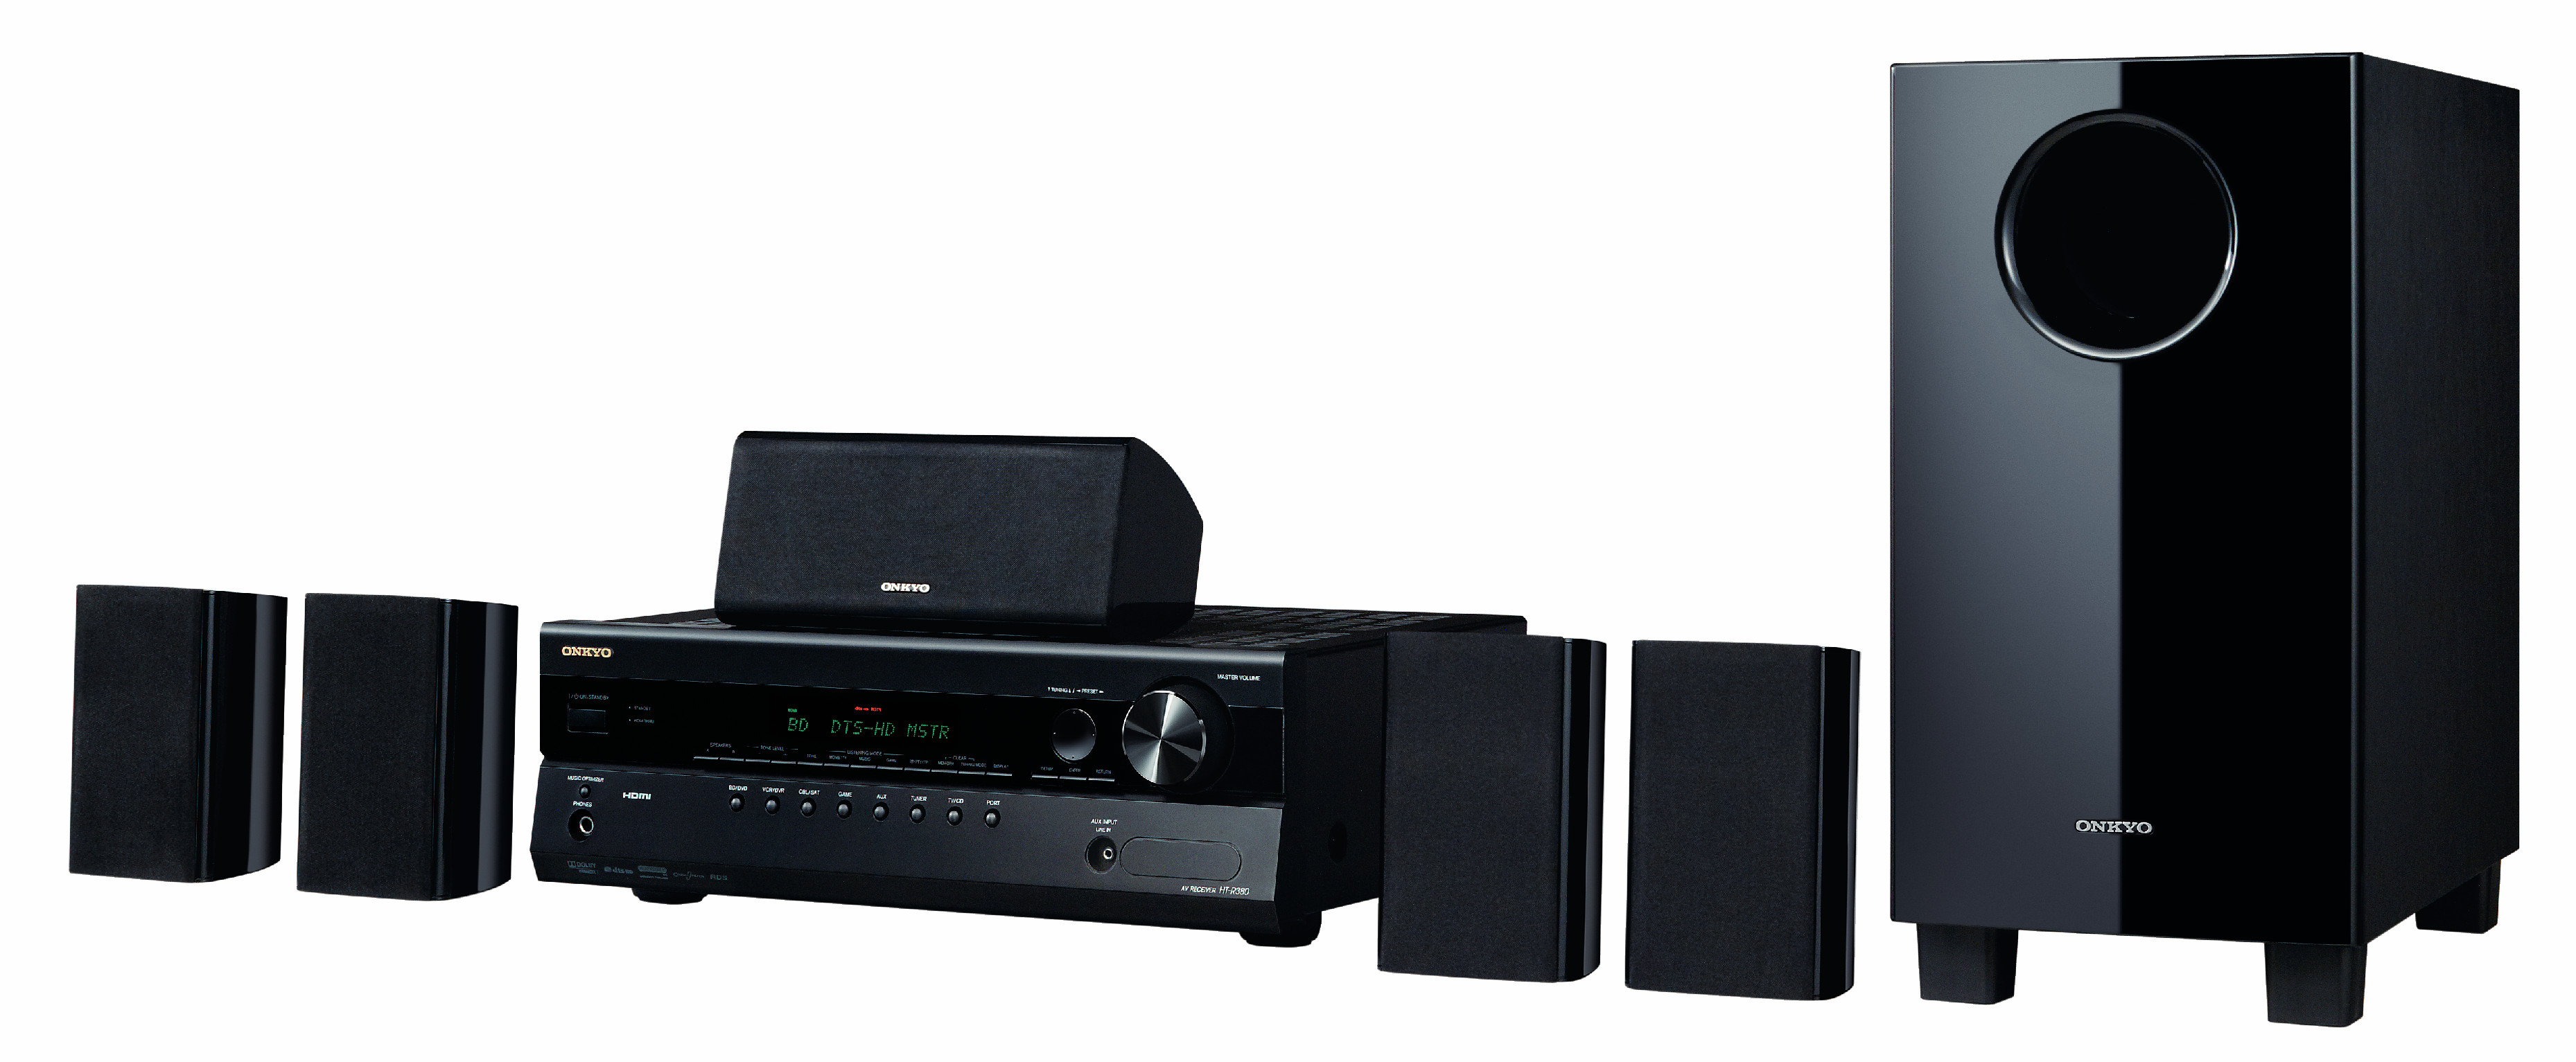 http://www.techdigest.tv/Onkyo%20HT-S3305%20top.jpg